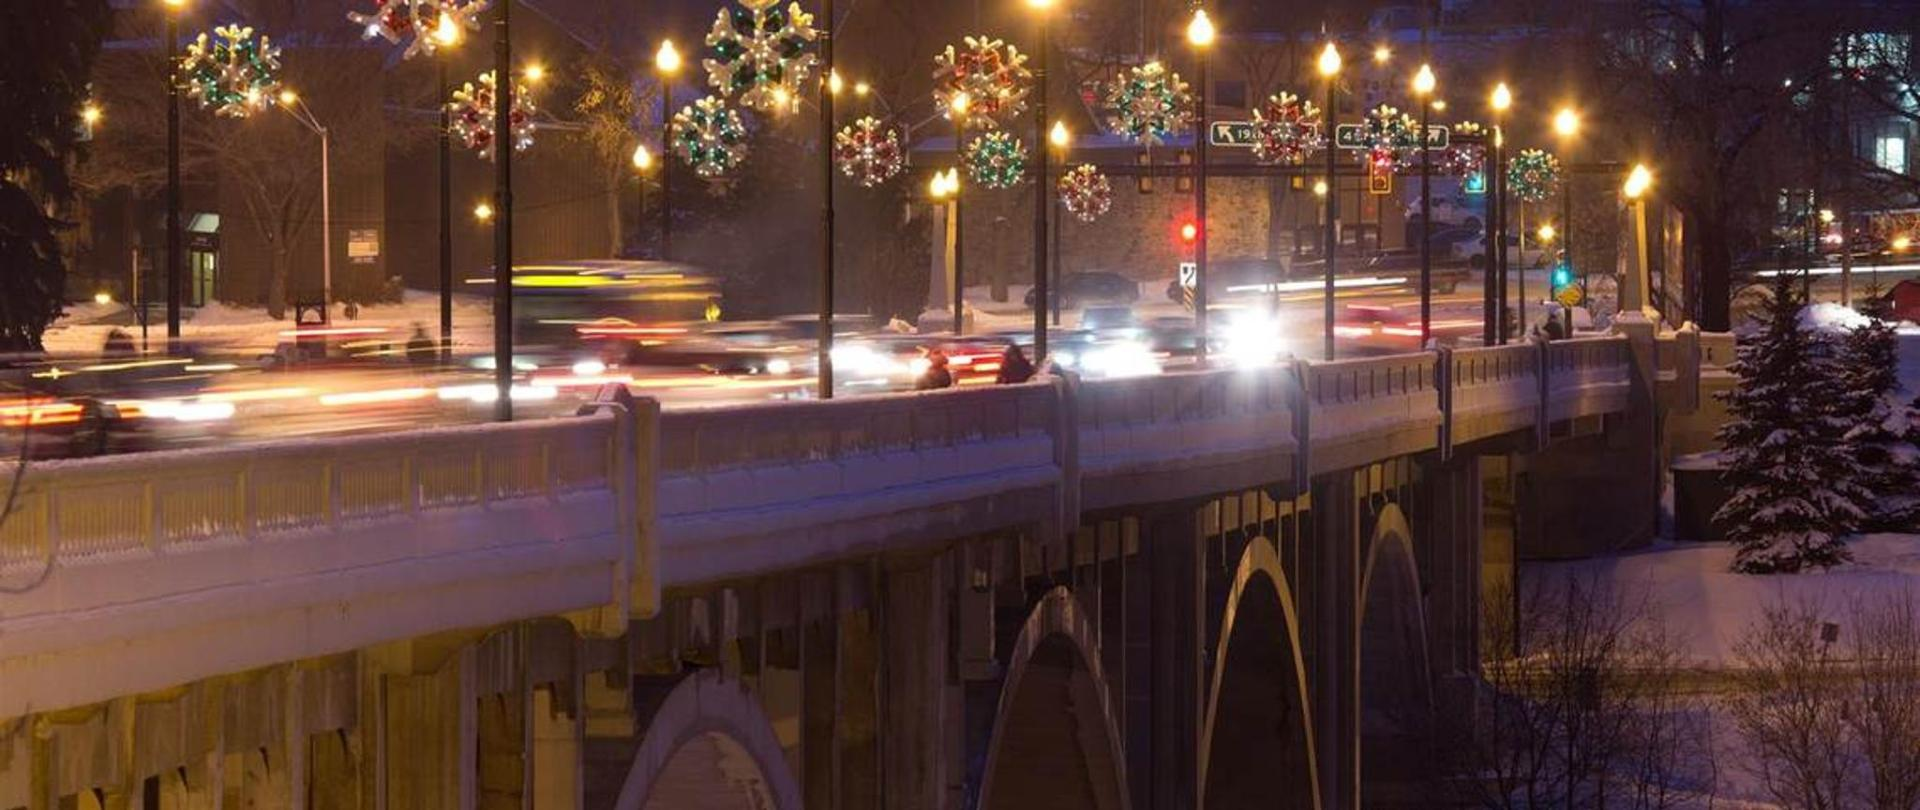 broadway-bridge-lit-up-for-christmas-compliments-of-tourism-saskatoon.jpg.1140x481_default.jpg